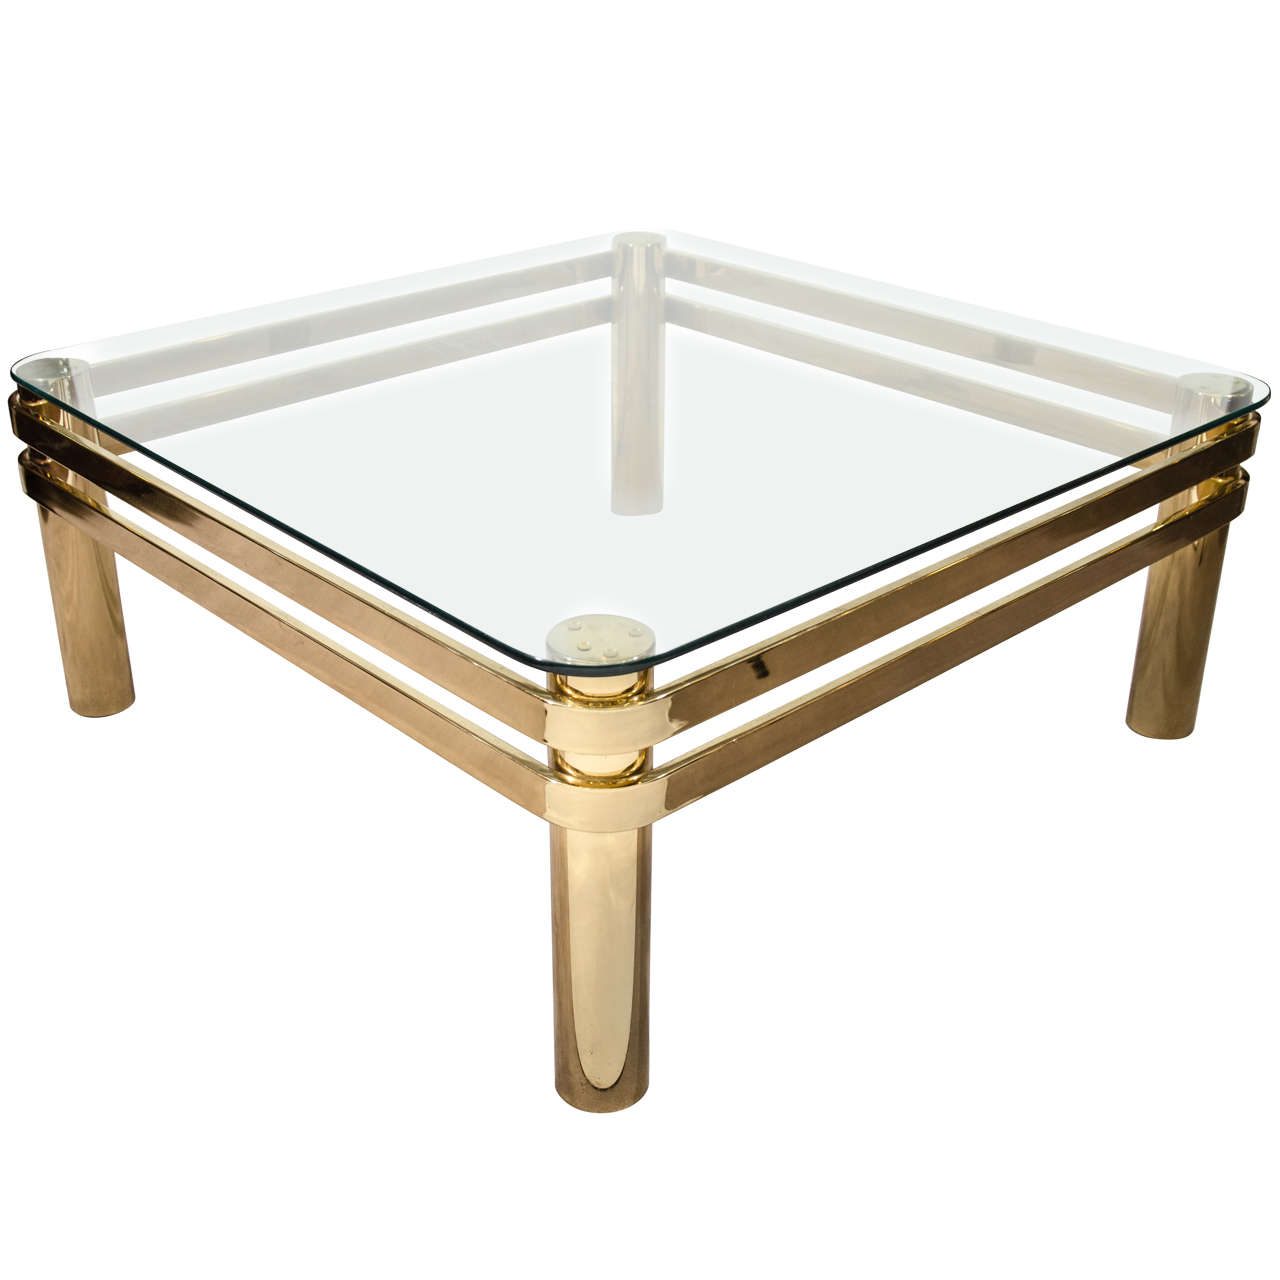 Brass Display Coffee Table: Brass And Glass Coffee Table With Ribbon Band Detailing At